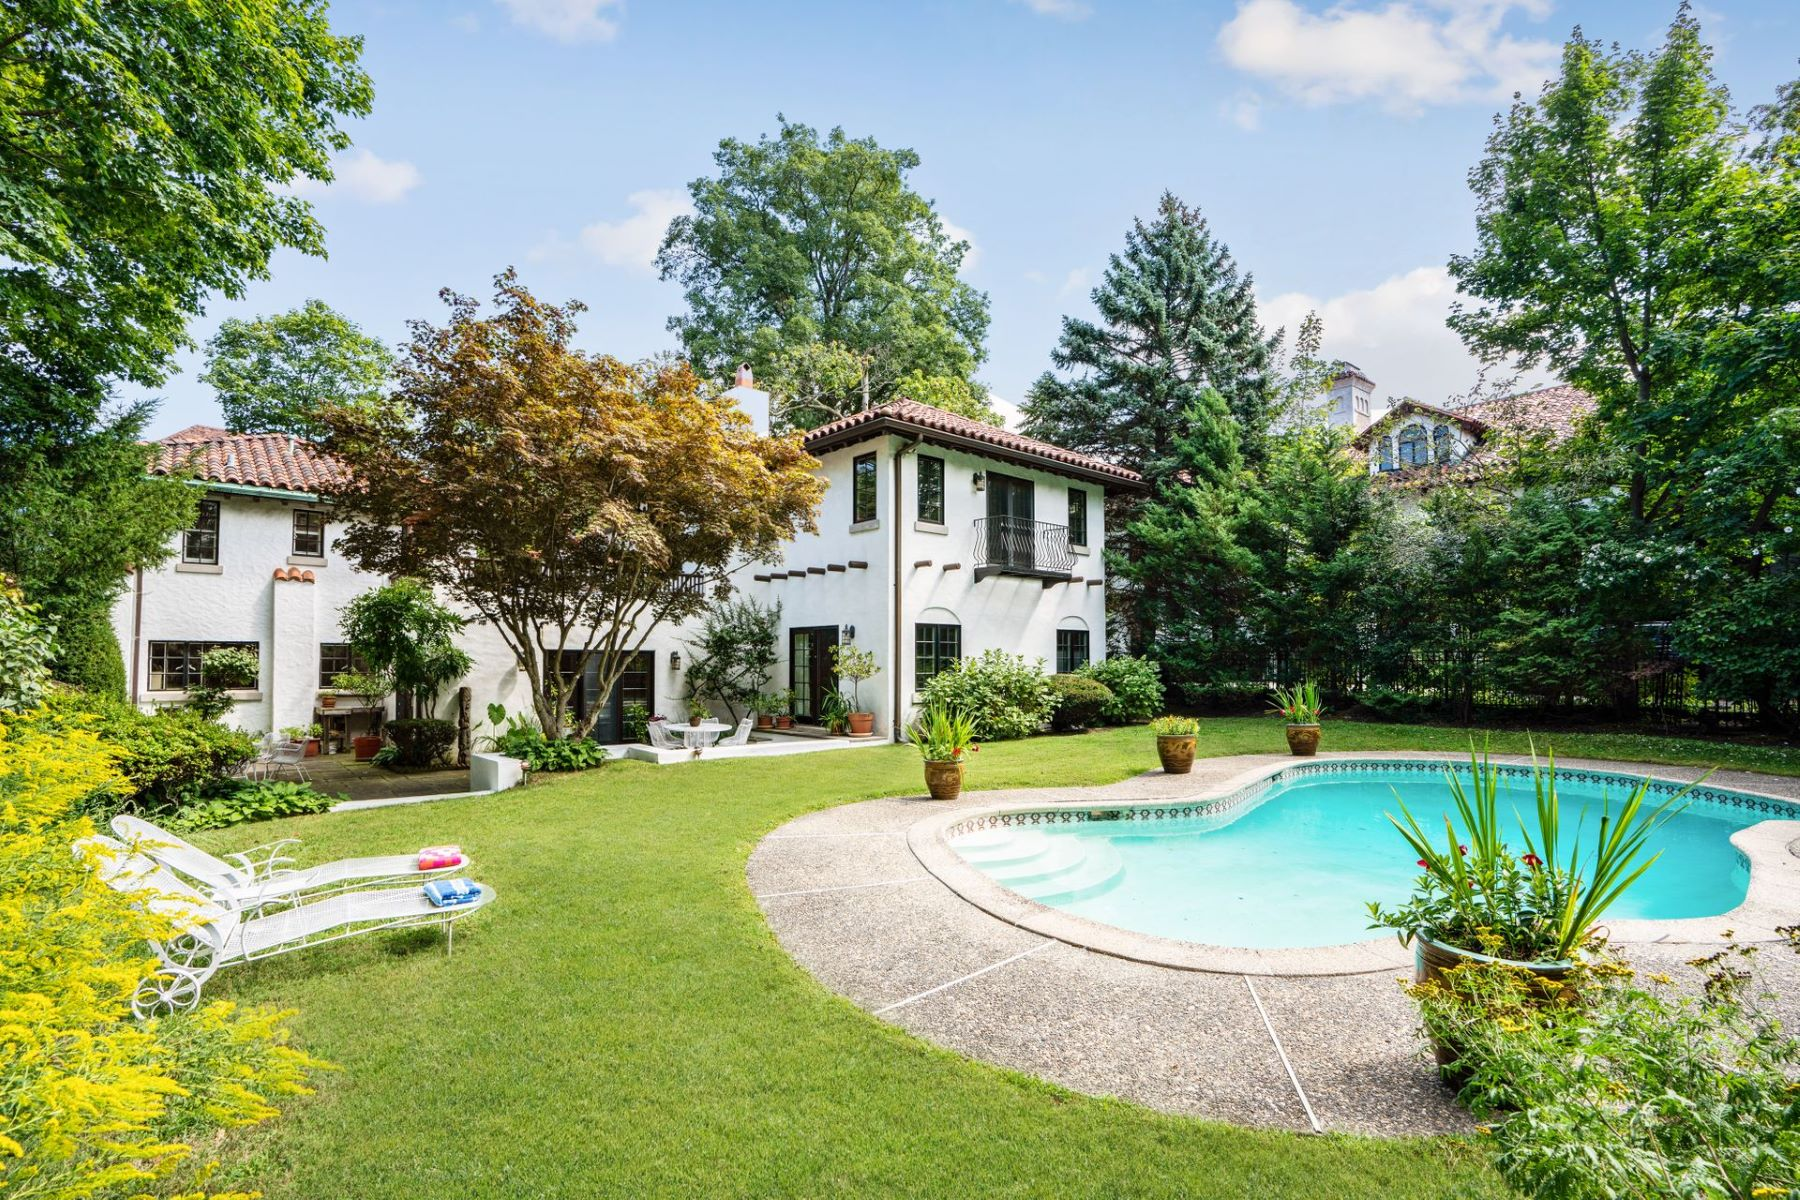 Single Family Homes for Active at 31 Magnolia Avenue Larchmont, New York 10538 United States